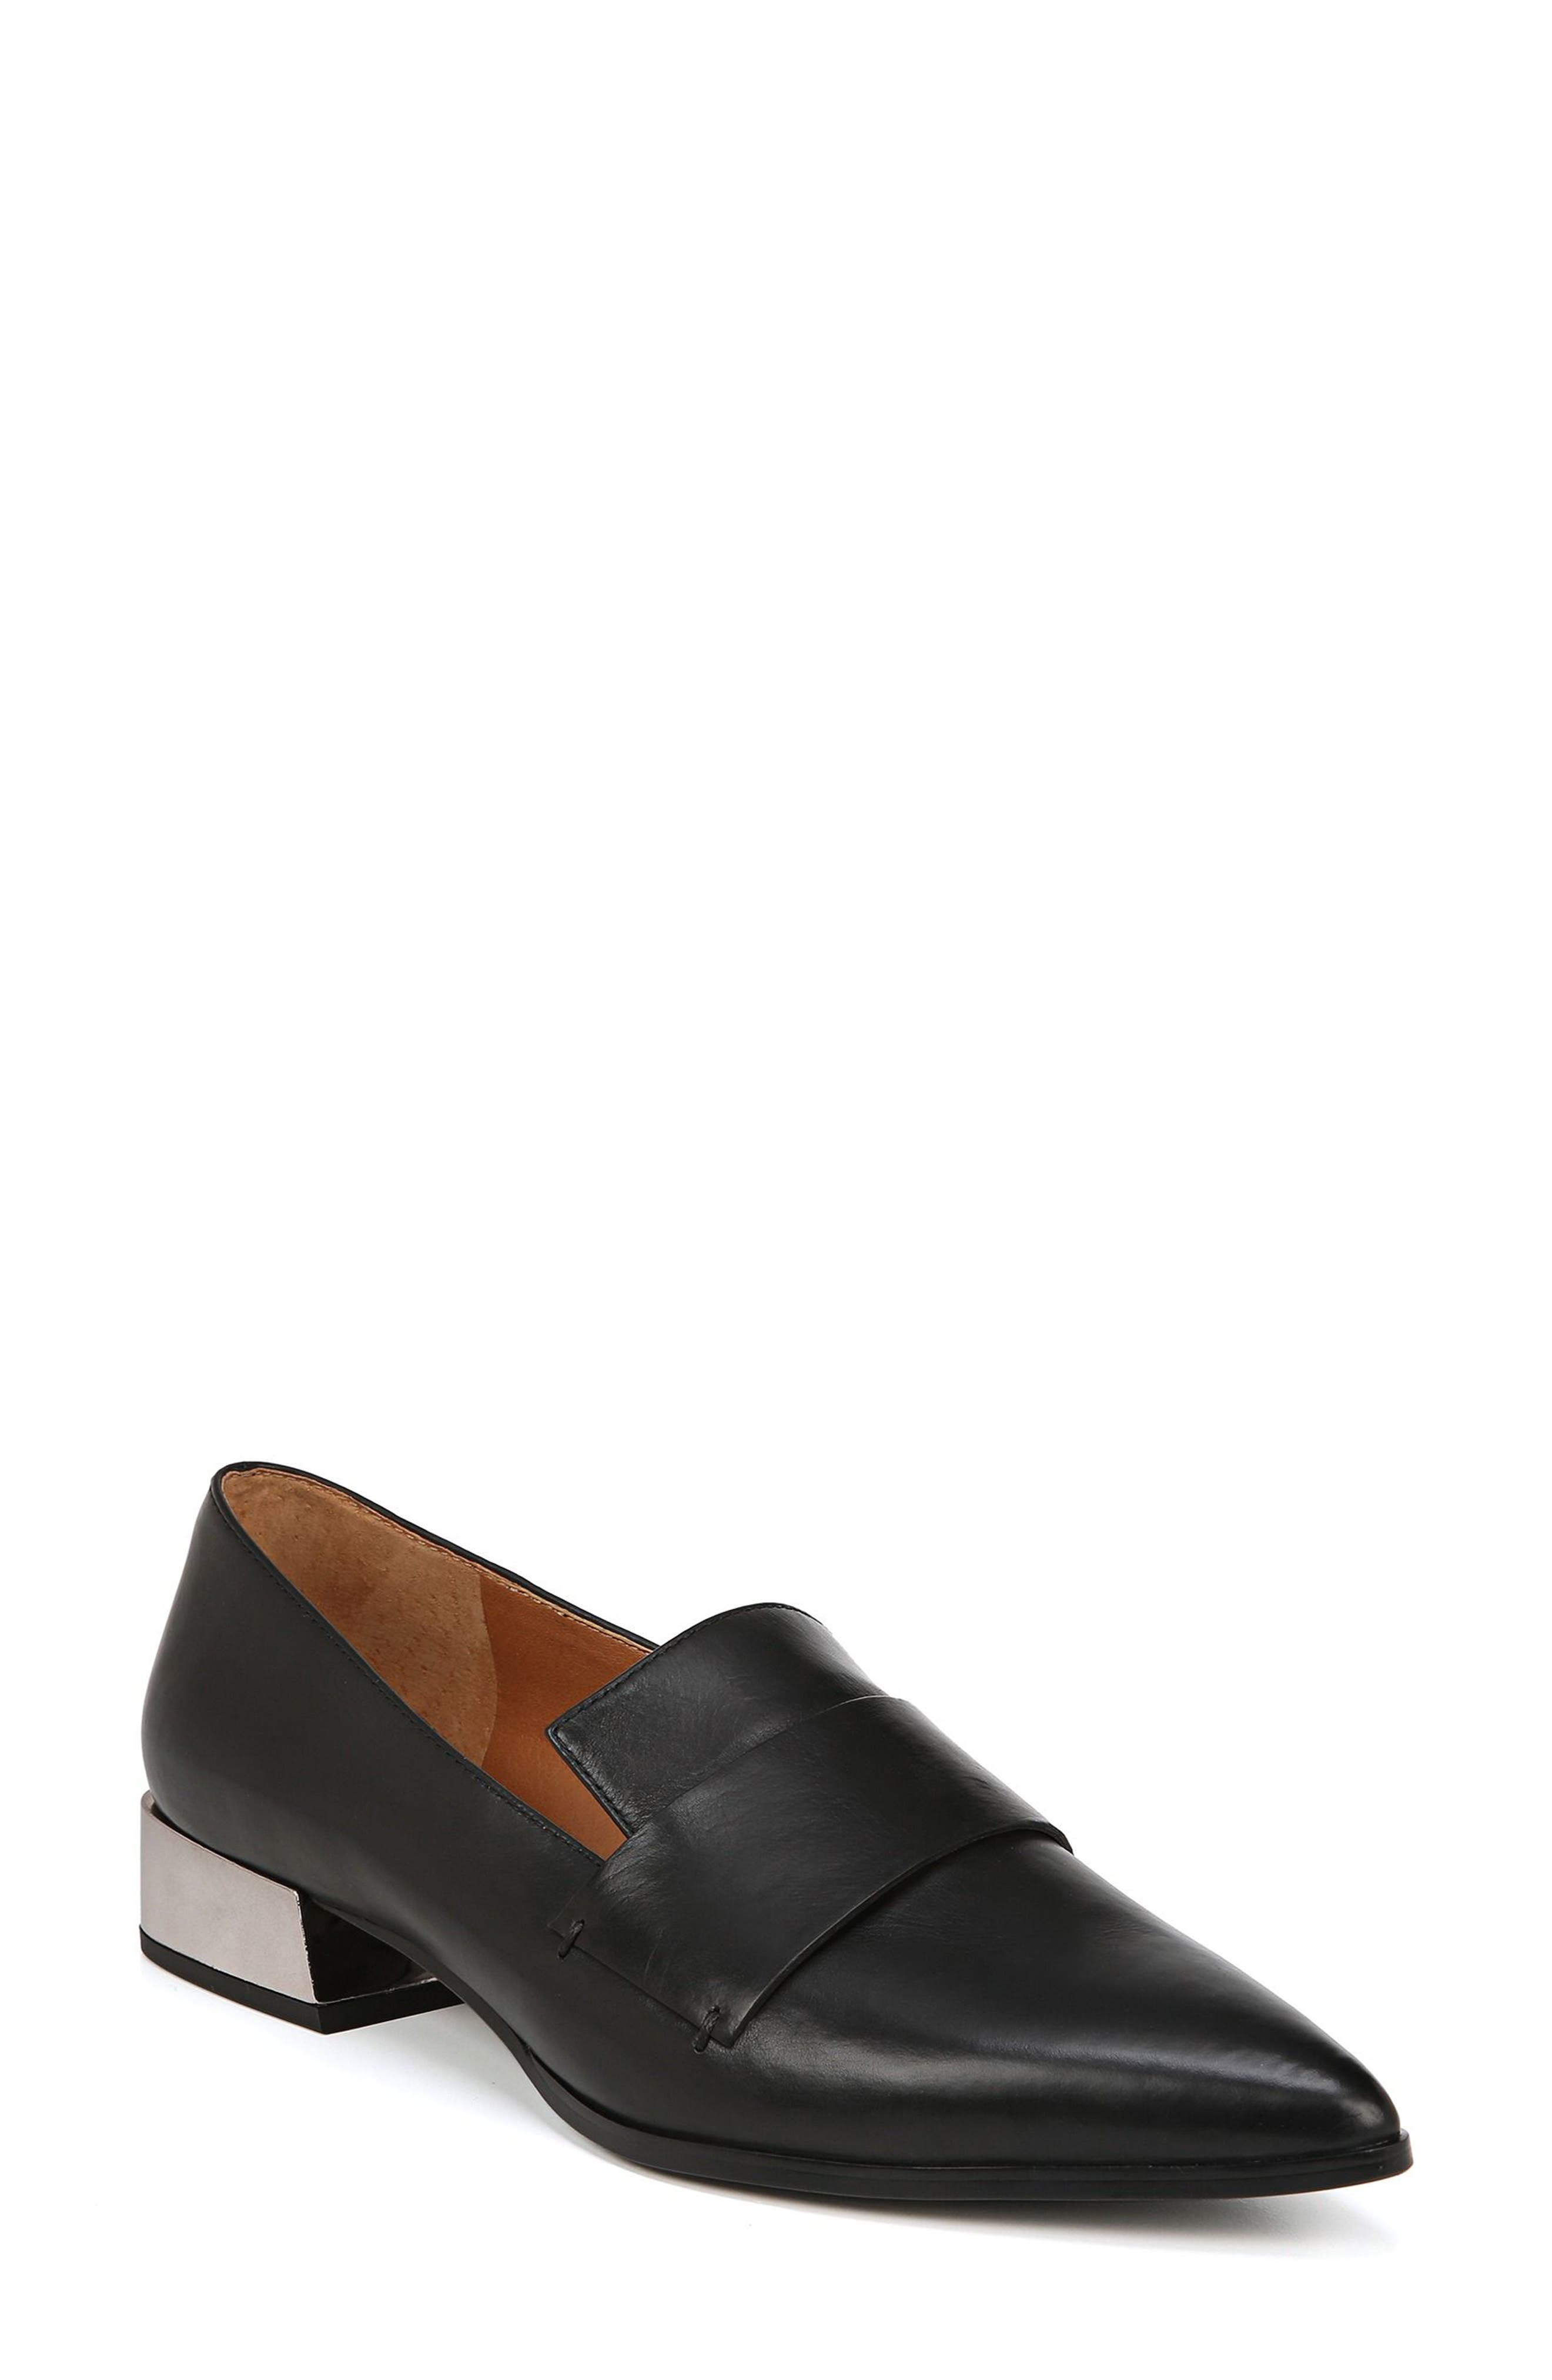 Nebby Loafer,                         Main,                         color, BLACK LEATHER